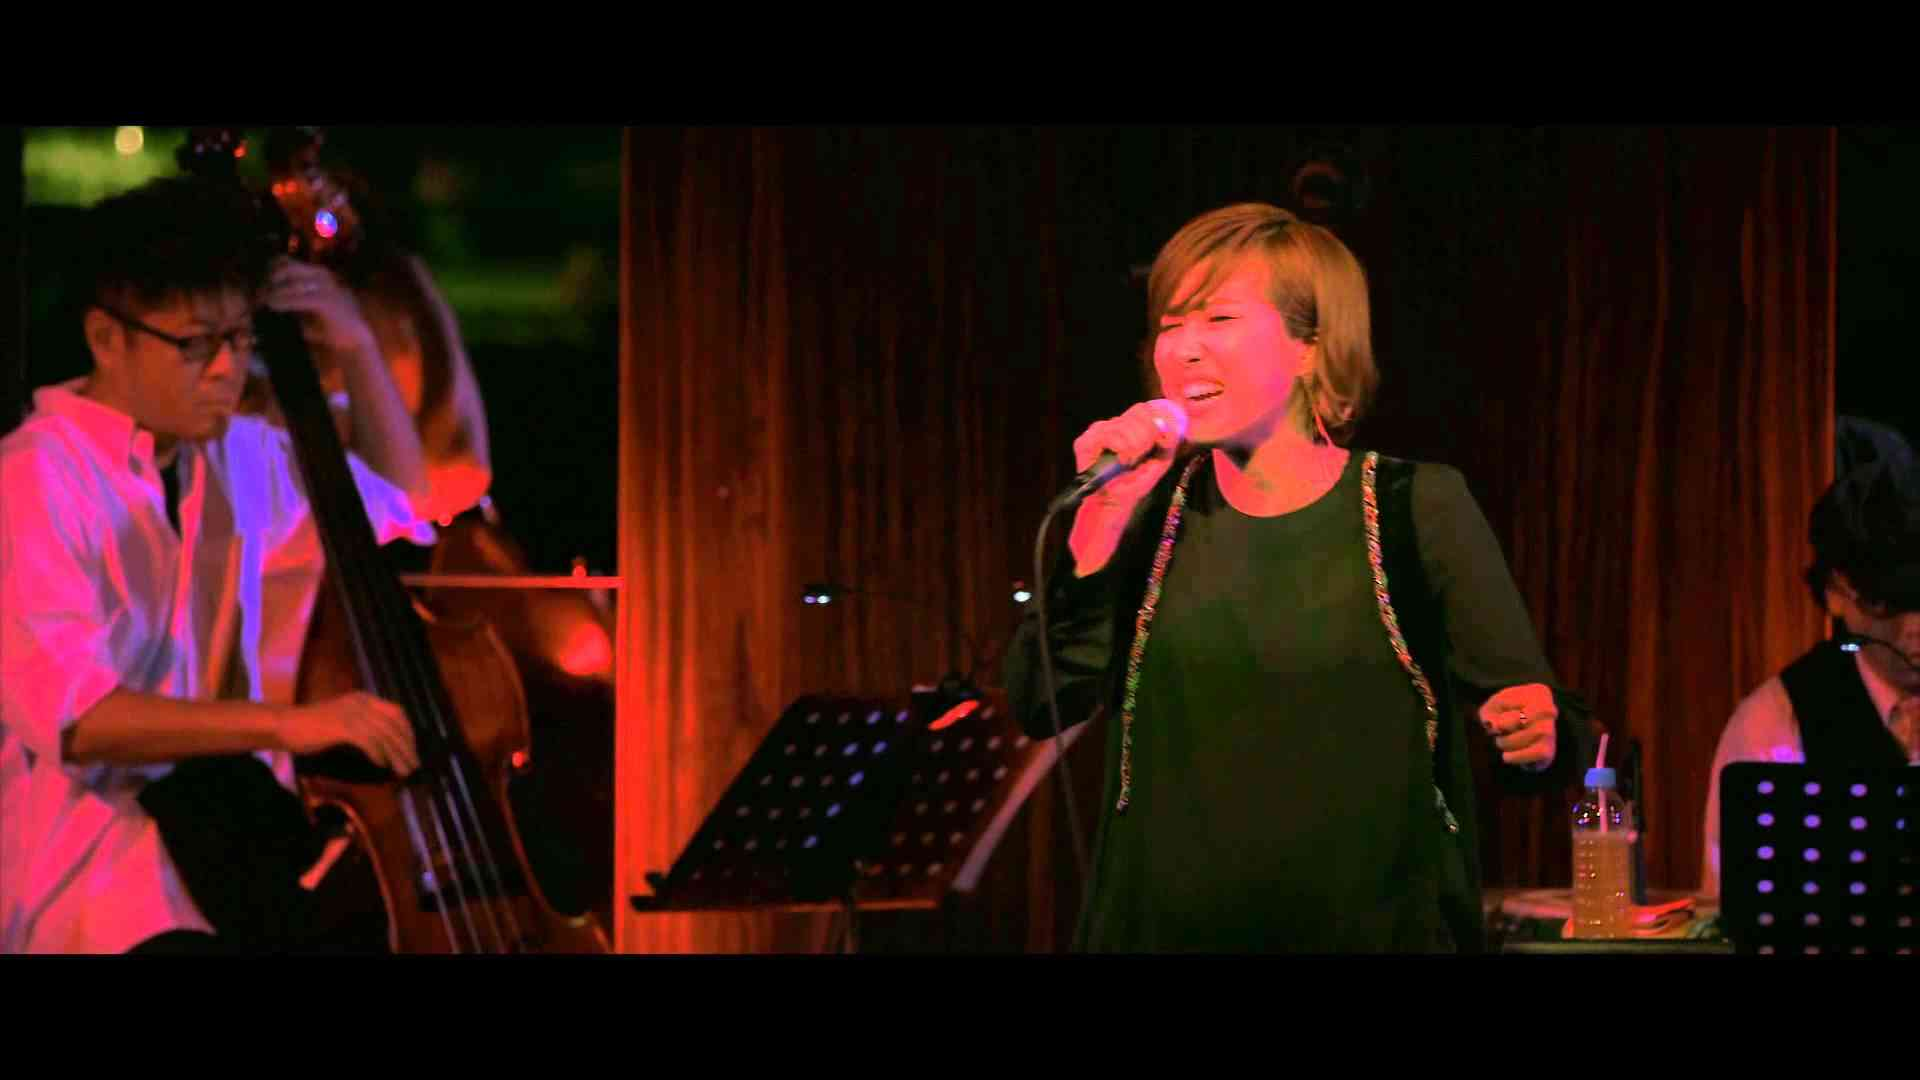 Grenade - Bruno Mars Cover by GILLE(ジル) [from 2012.10.3 ショーケース・ライブ] - YouTube